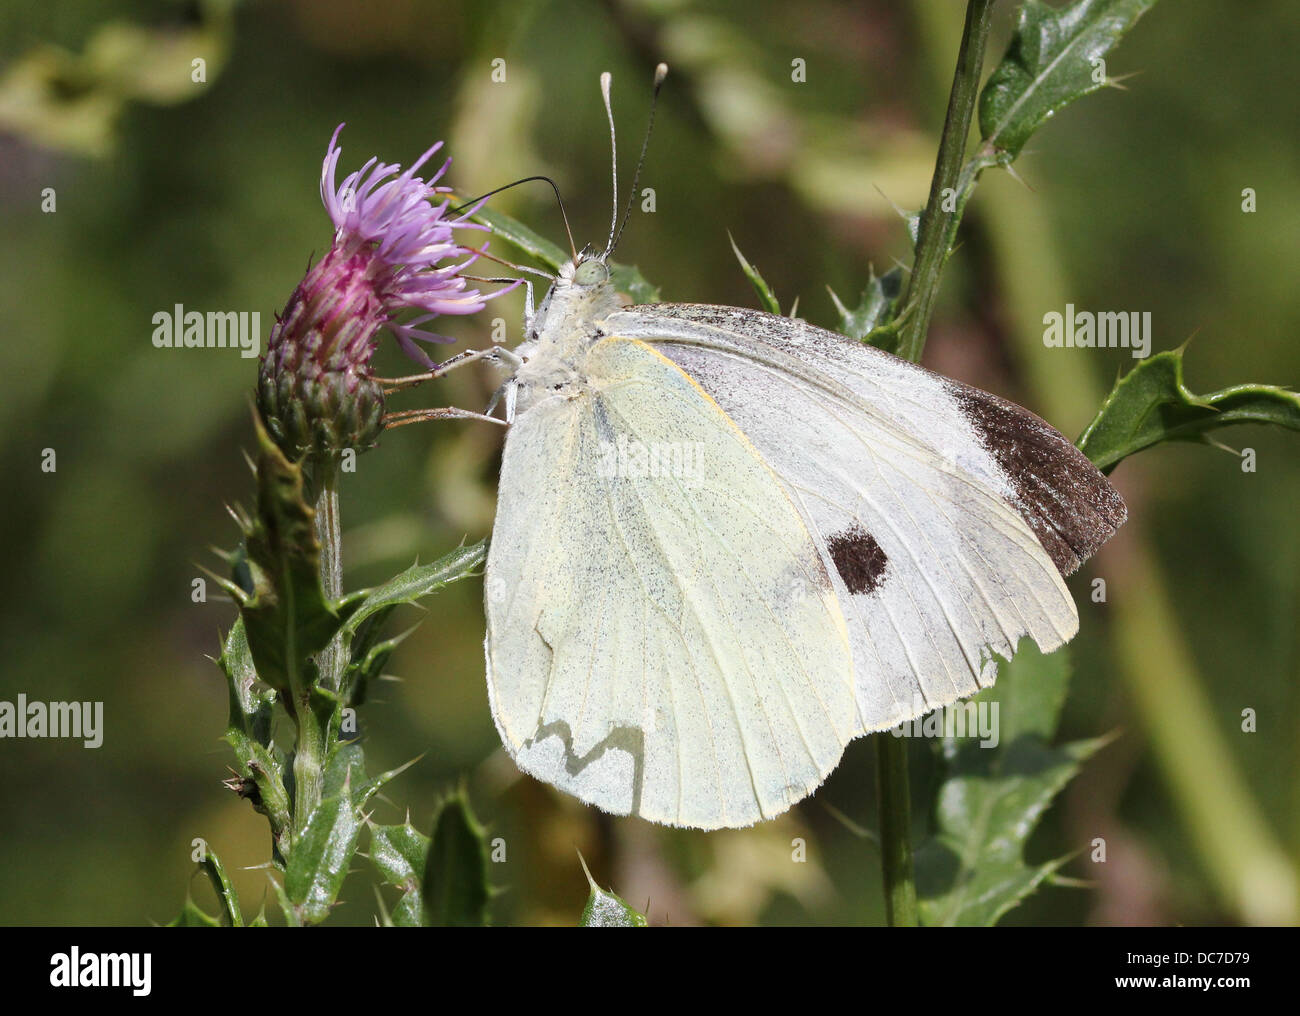 Female Large Cabbage White (Pieris brassicae) foraging on various purple flowers with wings open and closed - Stock Image